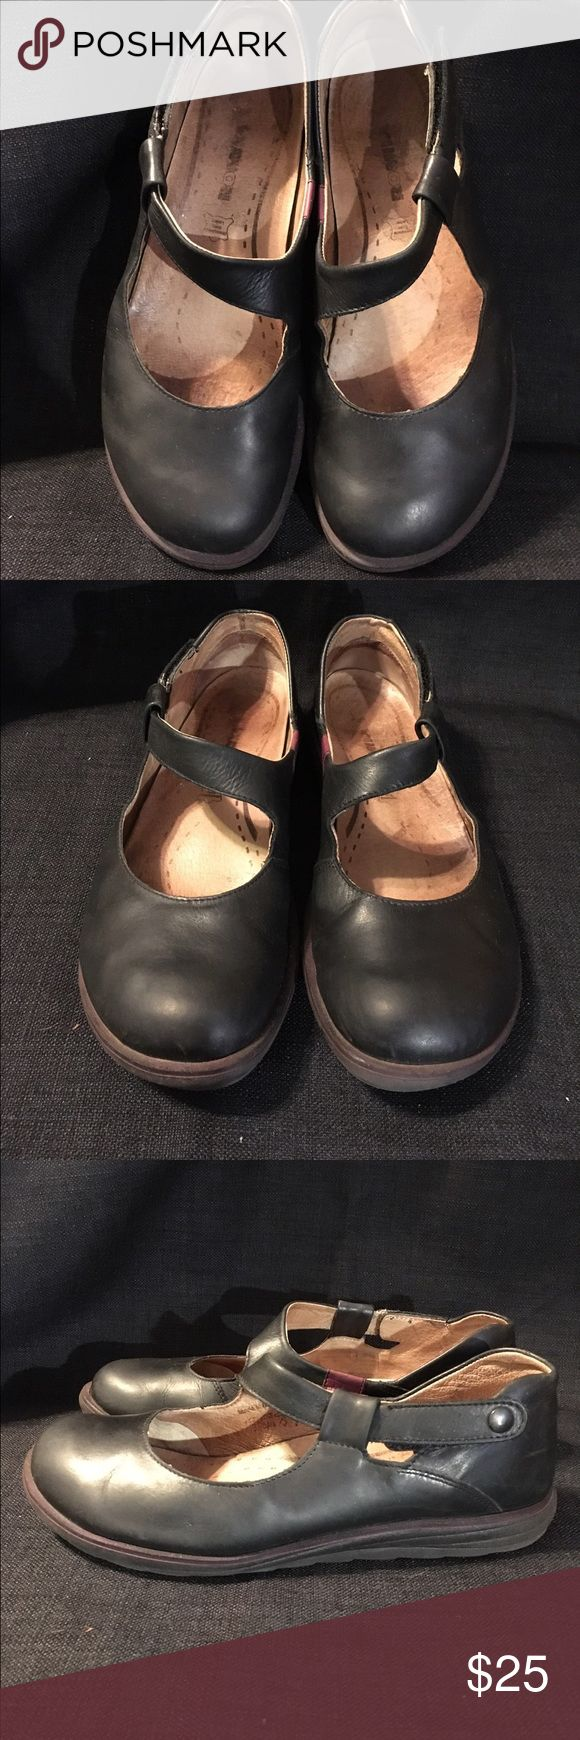 Size 9/39 Romika Mary Janes Cute black leather size 9 Romika Mary Janes, good condition and gently used. These are amazingly comfortable. romika Shoes Flats & Loafers